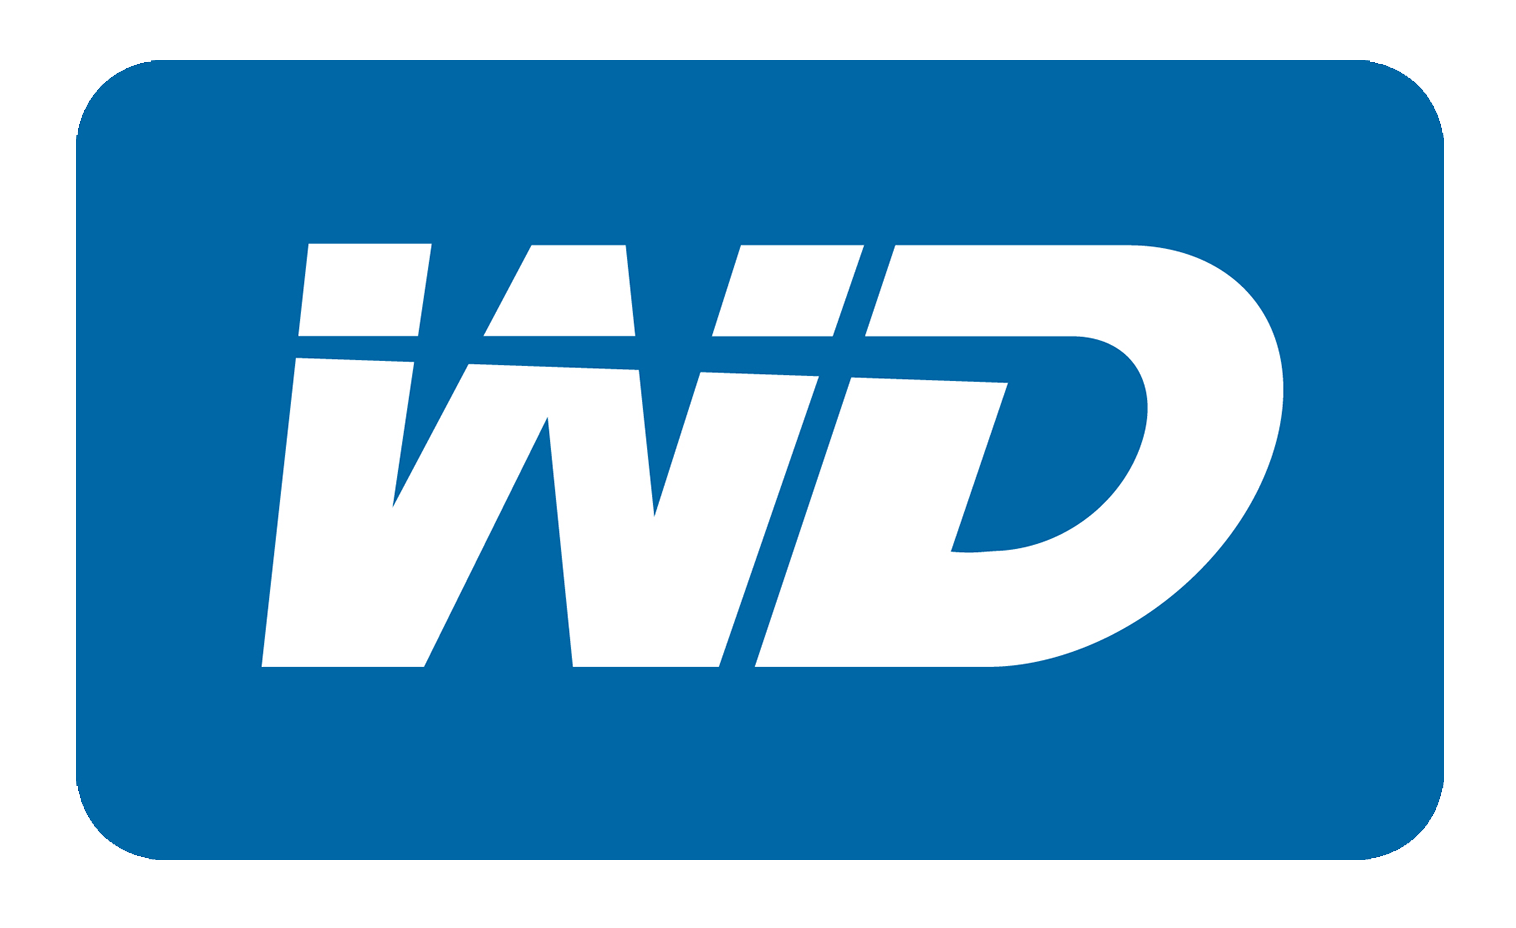 Western Digital Corporation (NASDAQ:WDC) Ratings Summary as of May 2, 2018